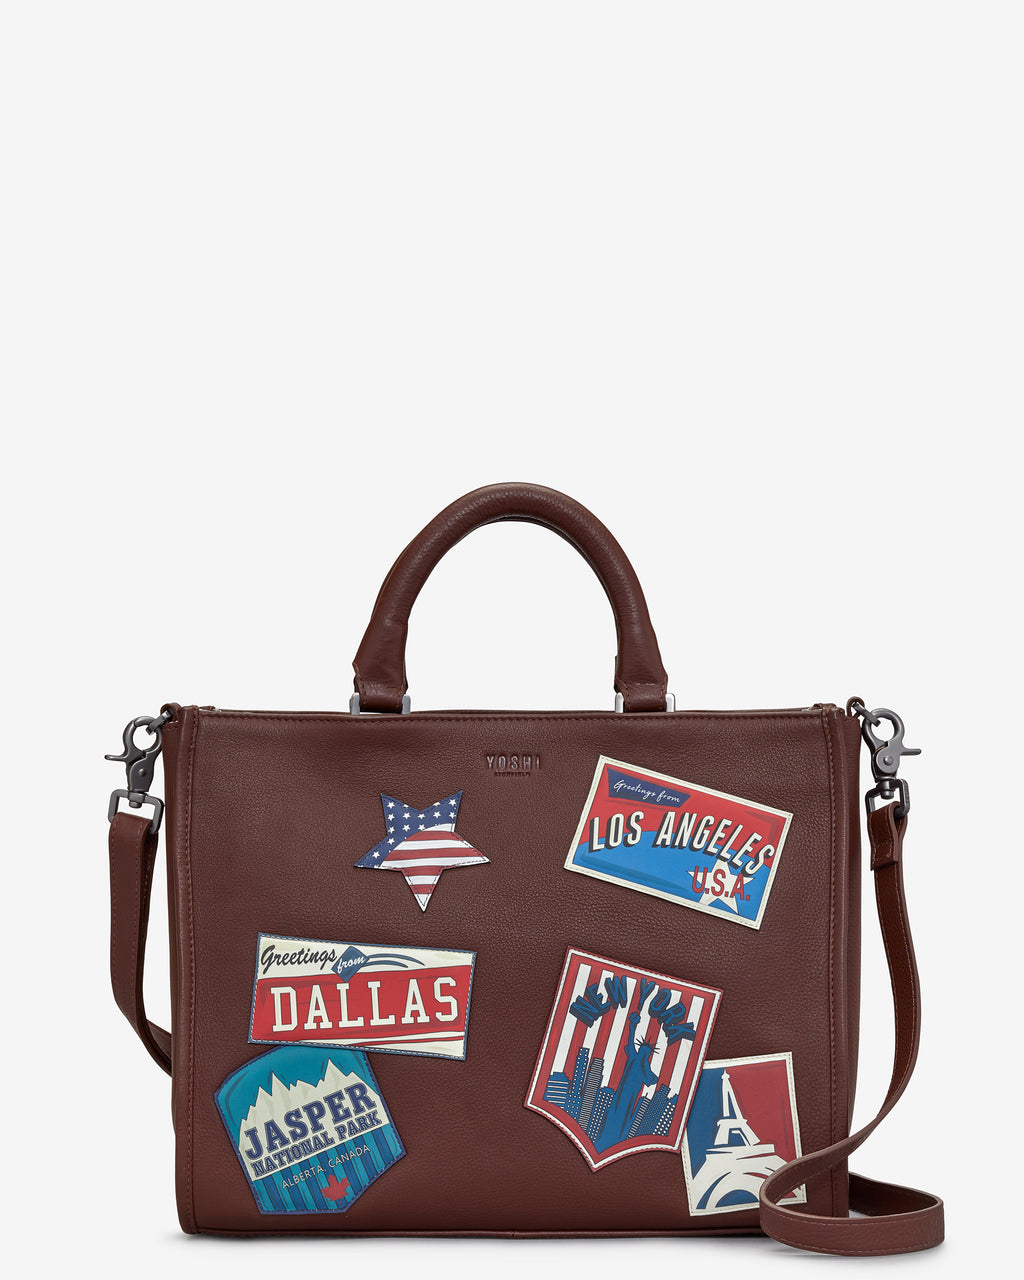 Happy Travels Leather Tote Bag